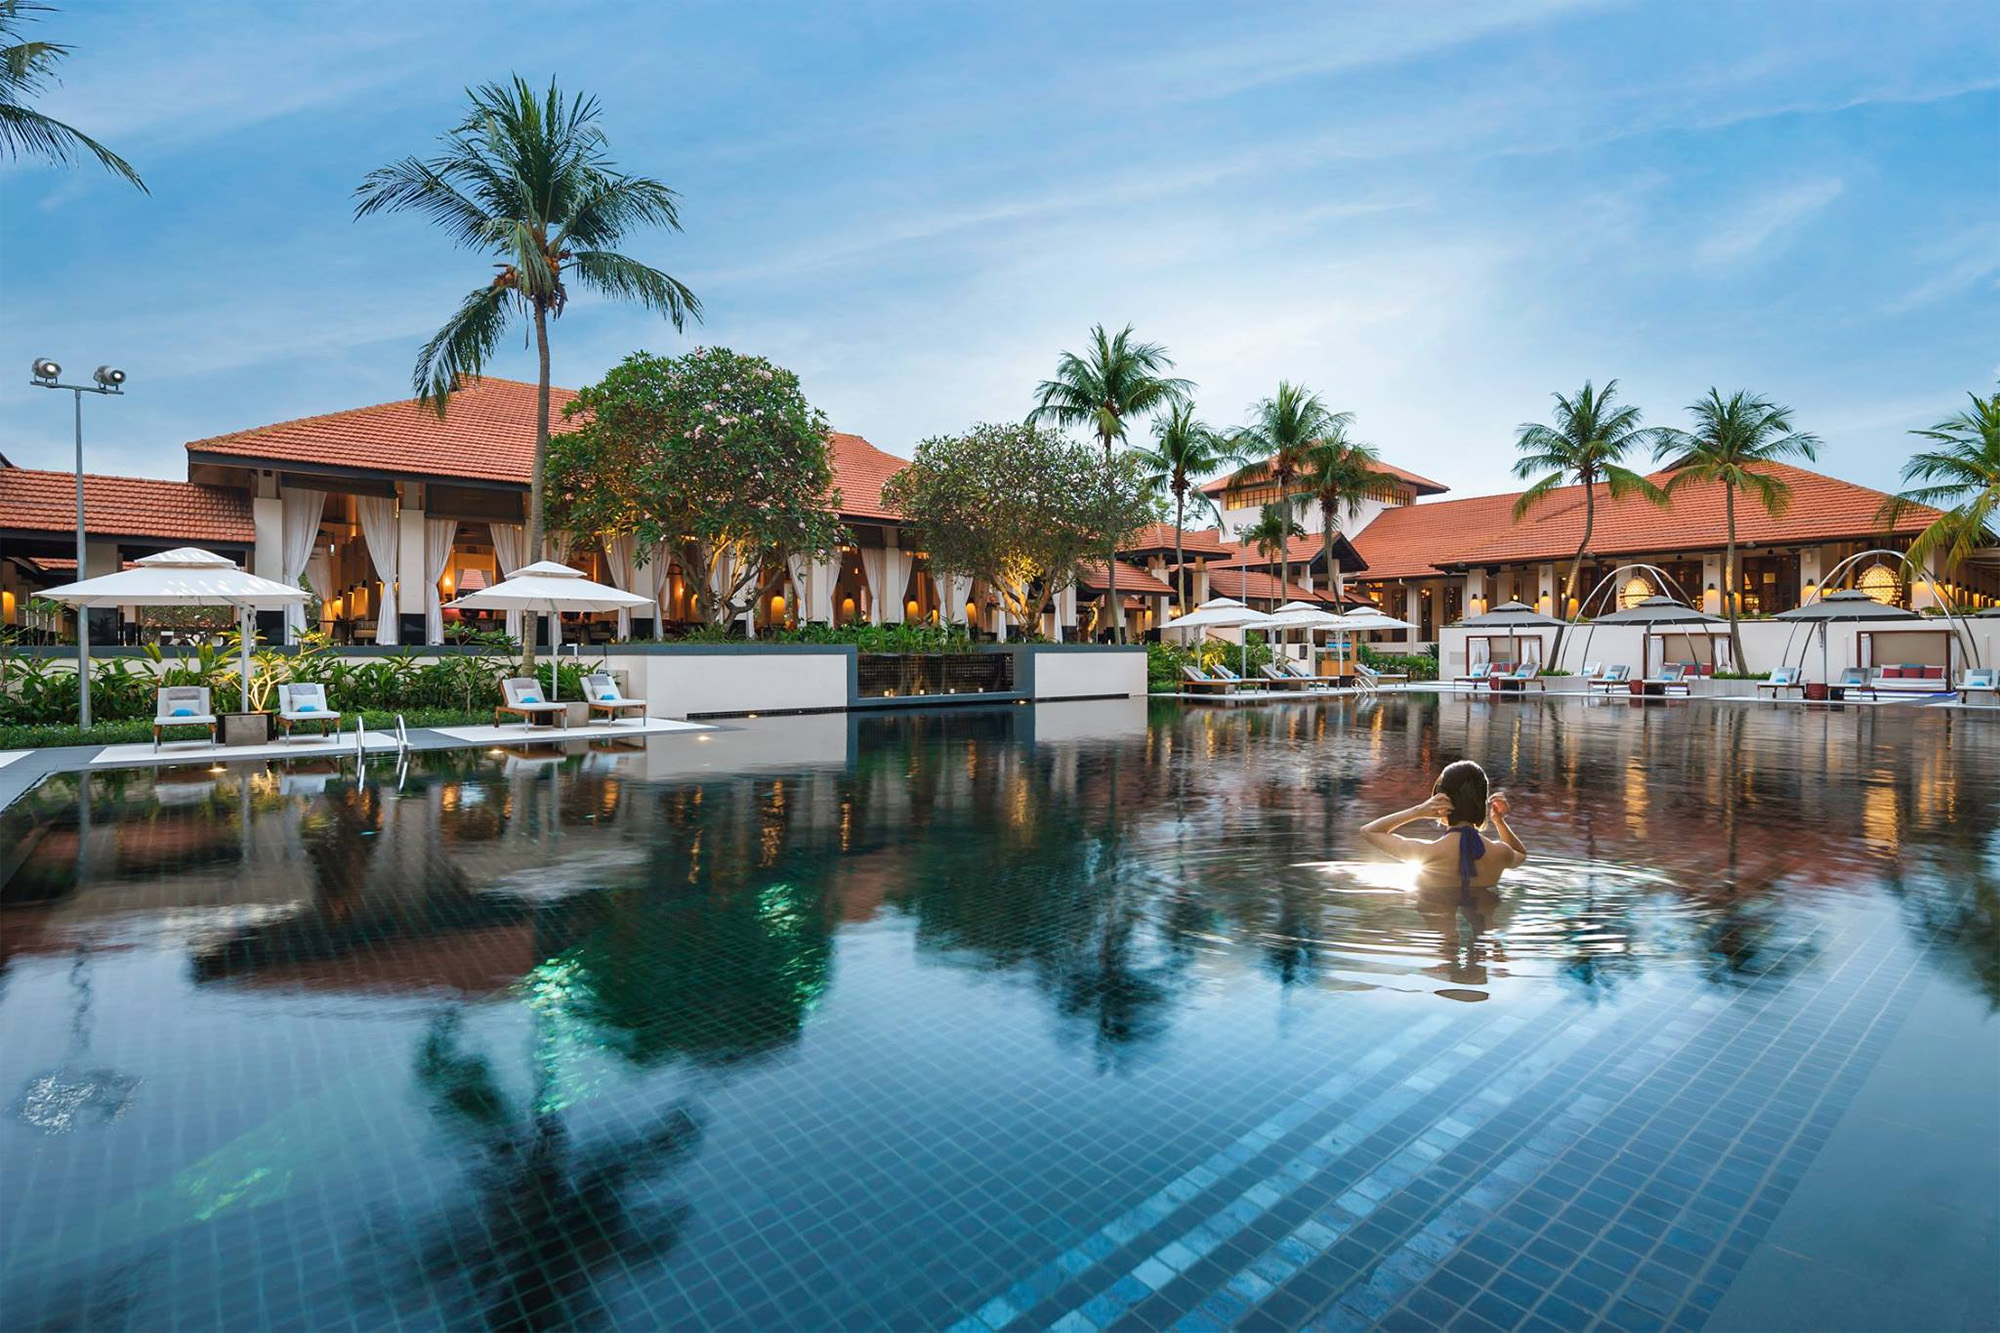 Sofitel Sentosa Pool (Accor)